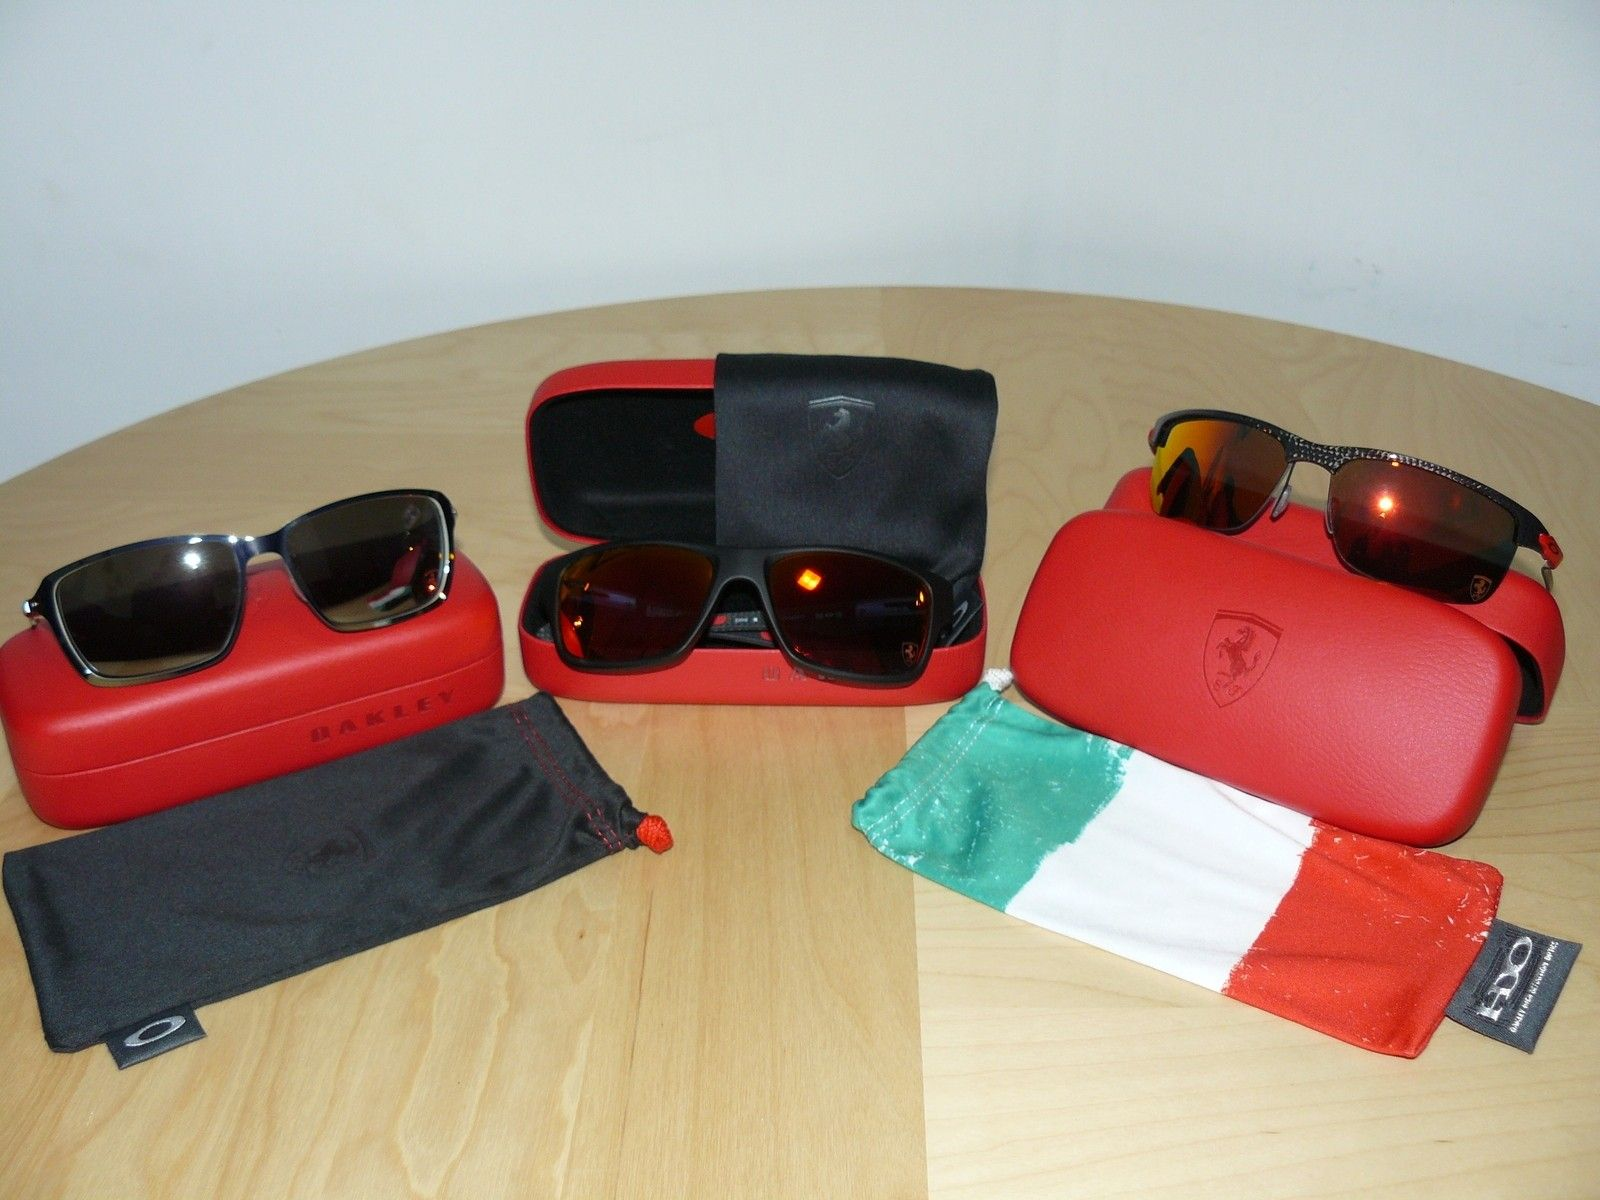 New Items in DOakley's collection - 3 Ferrari.JPG